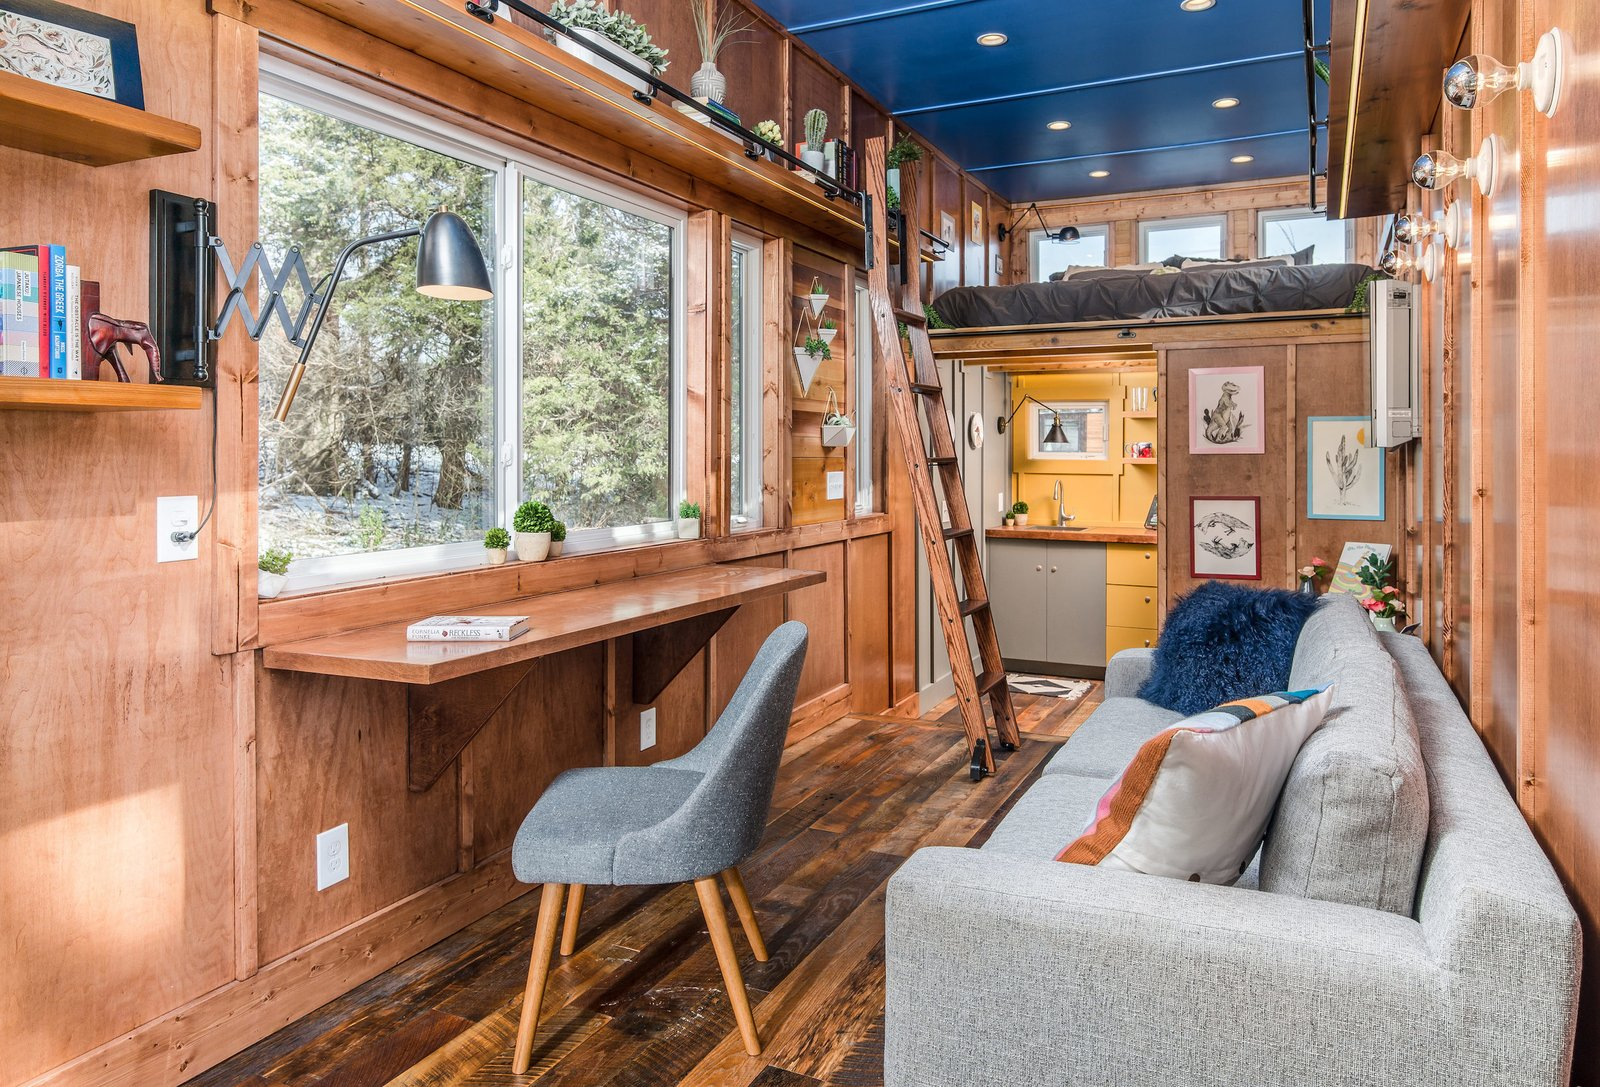 """Living, Recessed, Medium Hardwood, Desk, Shelves, Wall, Sofa, and Chair """"Cornelia is a real rock star,"""" says Latimer of his client-turned-friend. """"She is one of the most amazing people I have ever met.""""   Living Desk Wall Photos from This Tiny Home and Writing Studio Was Invented for a Children's Author"""